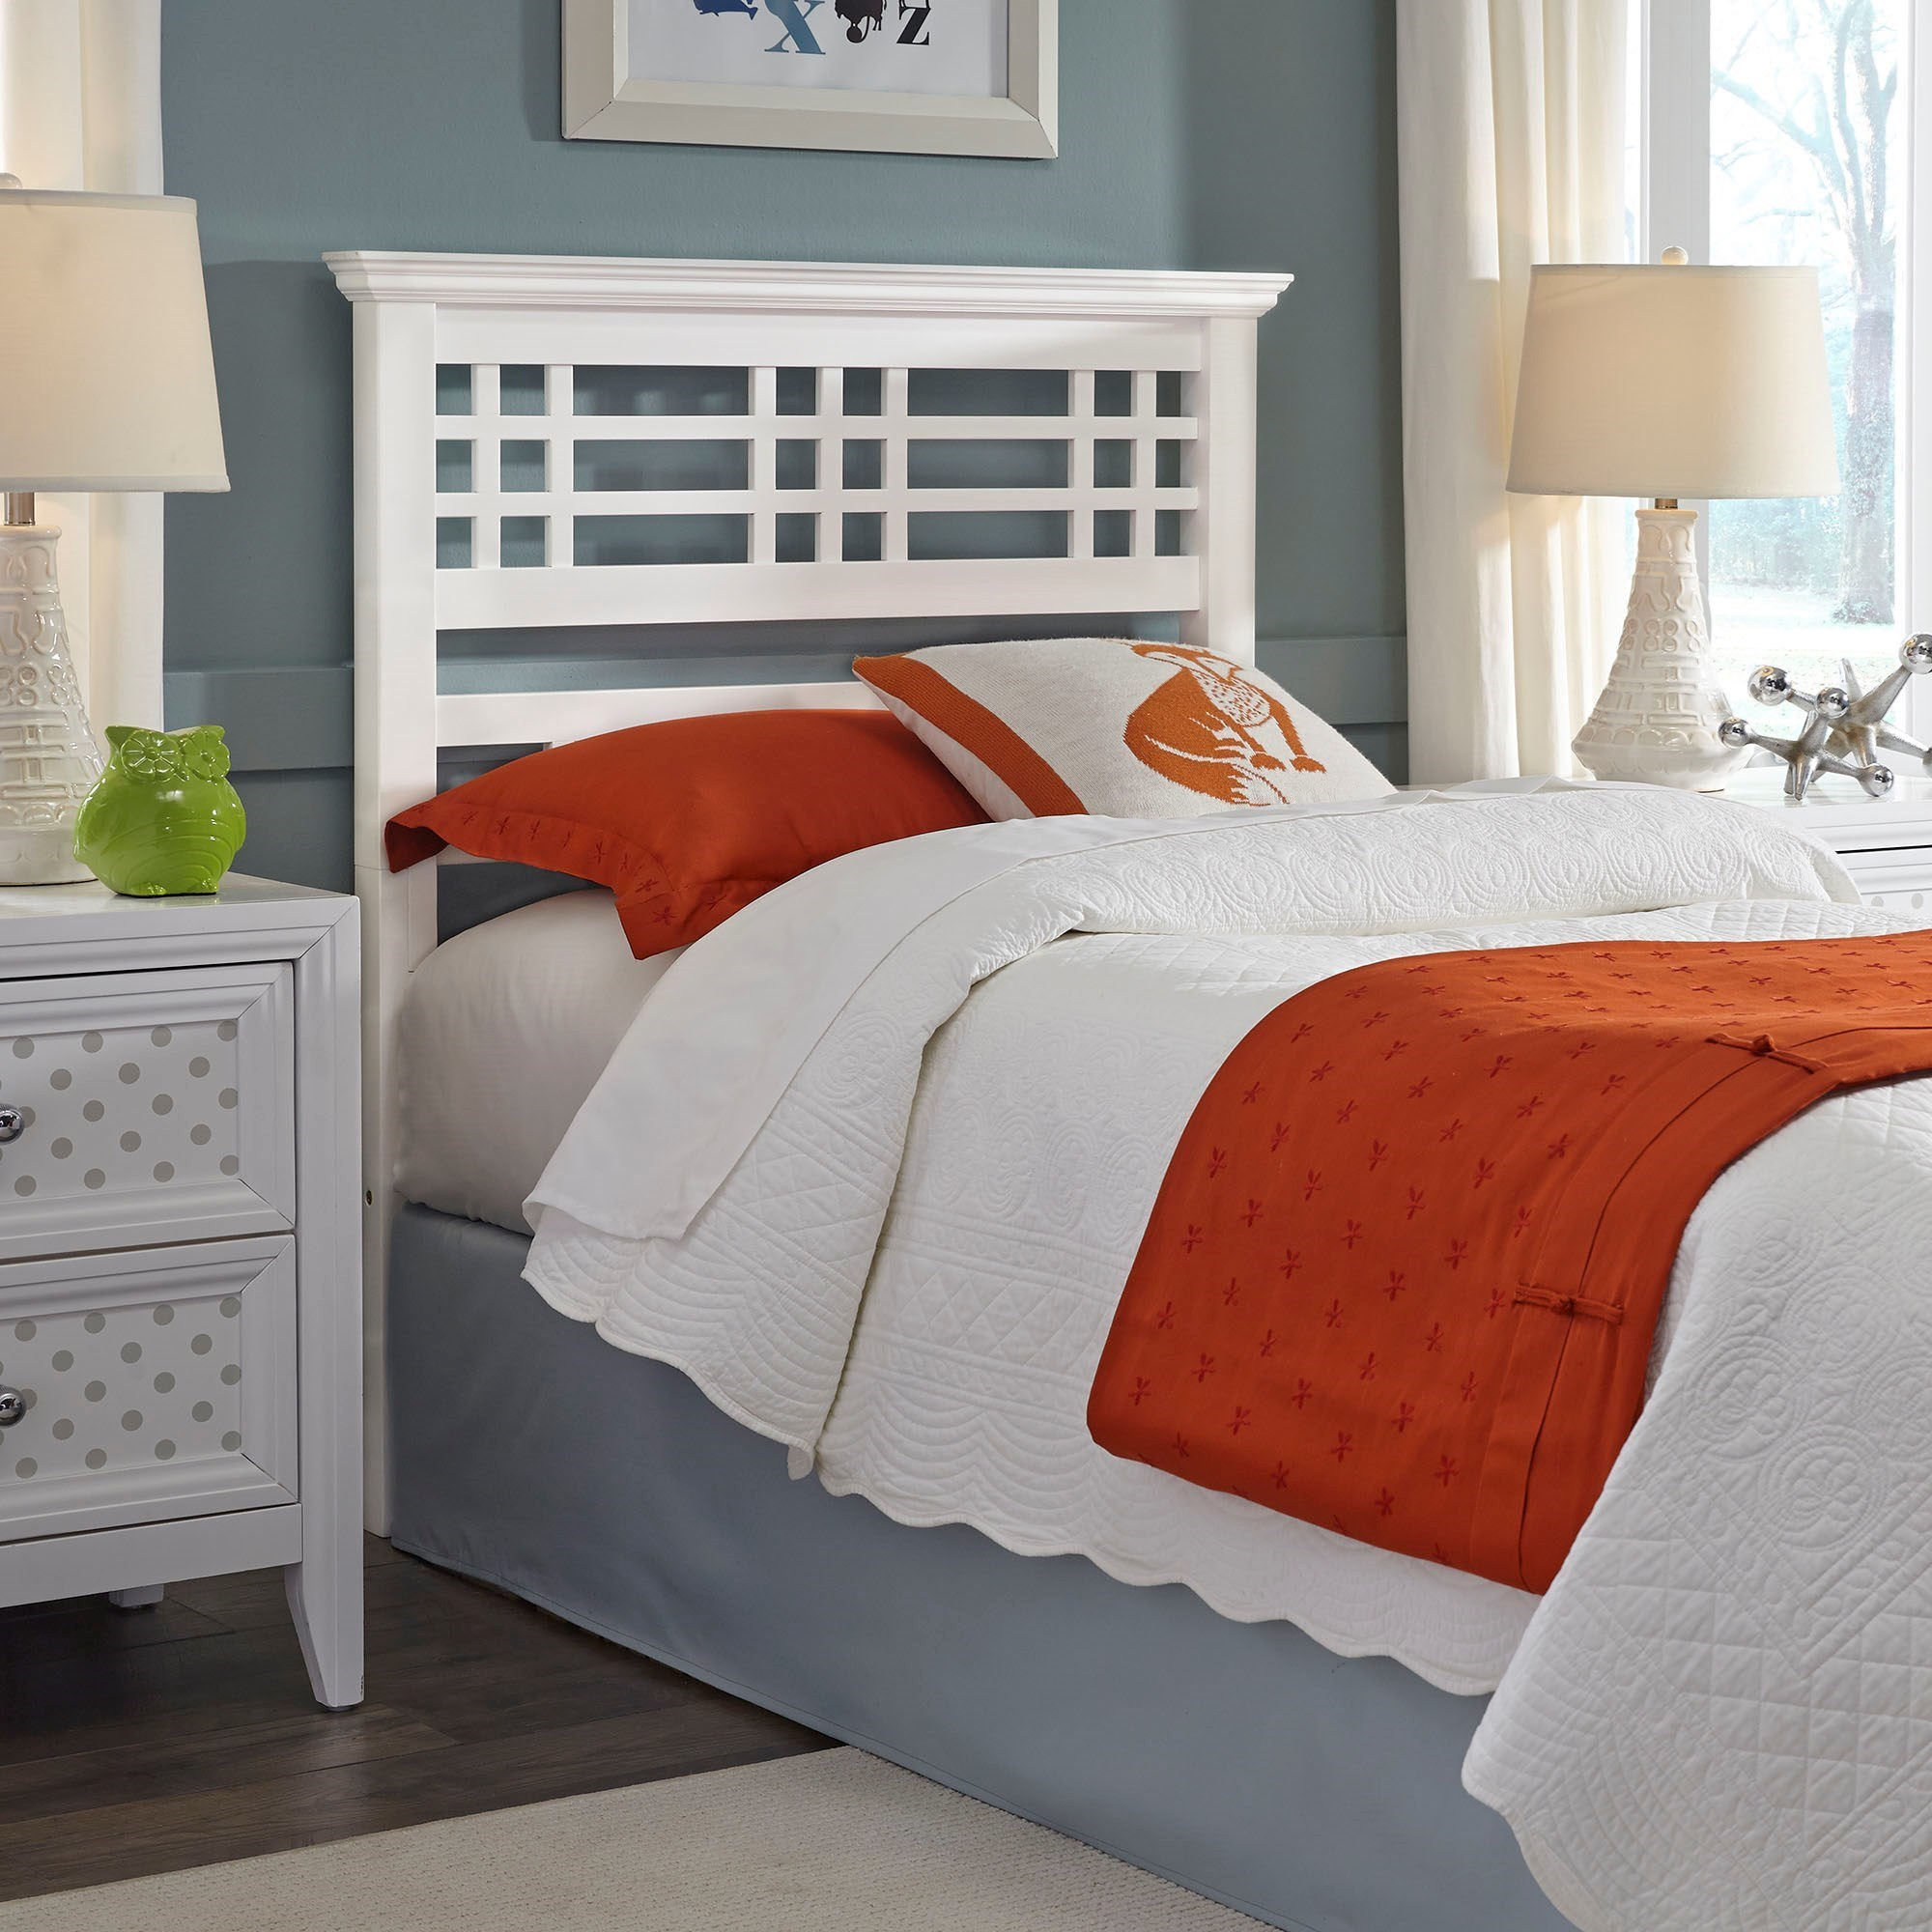 Canopy Style Bed Available For Order In These Wood Colours: Fashion Bed Group Avery Twin Headboard